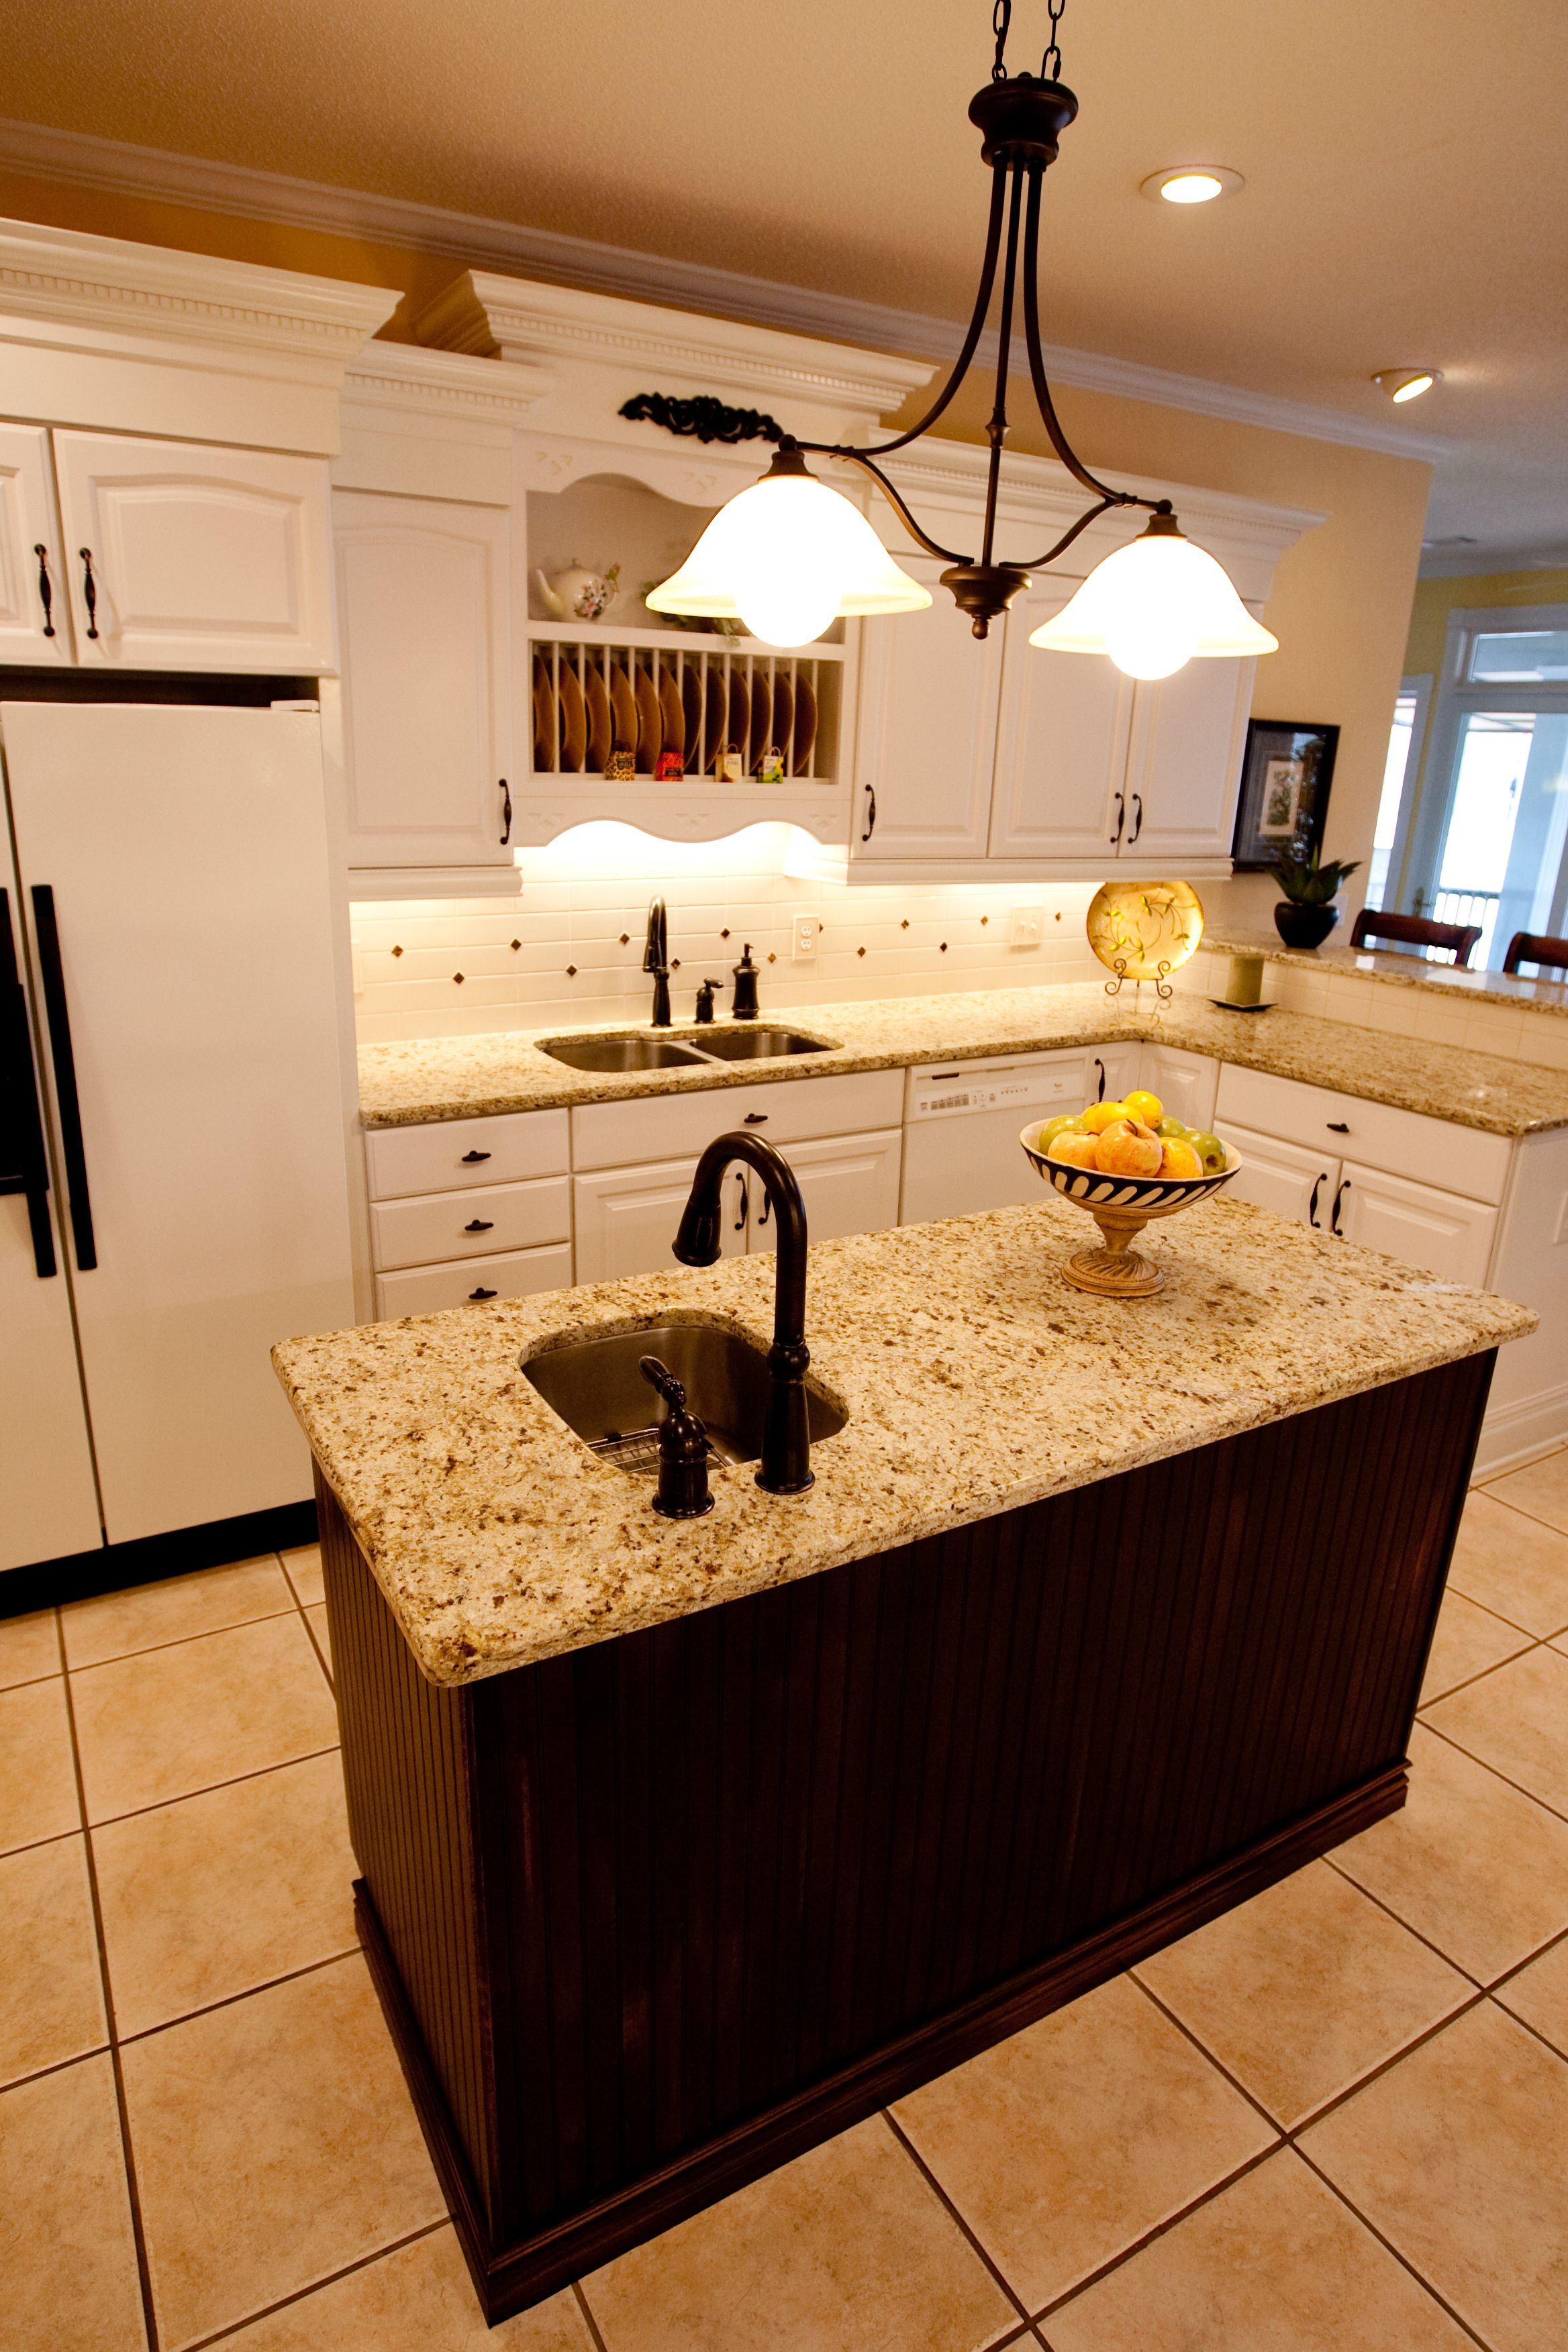 kitchens with sink in island - Bing Images | Kitchen Renovation ...